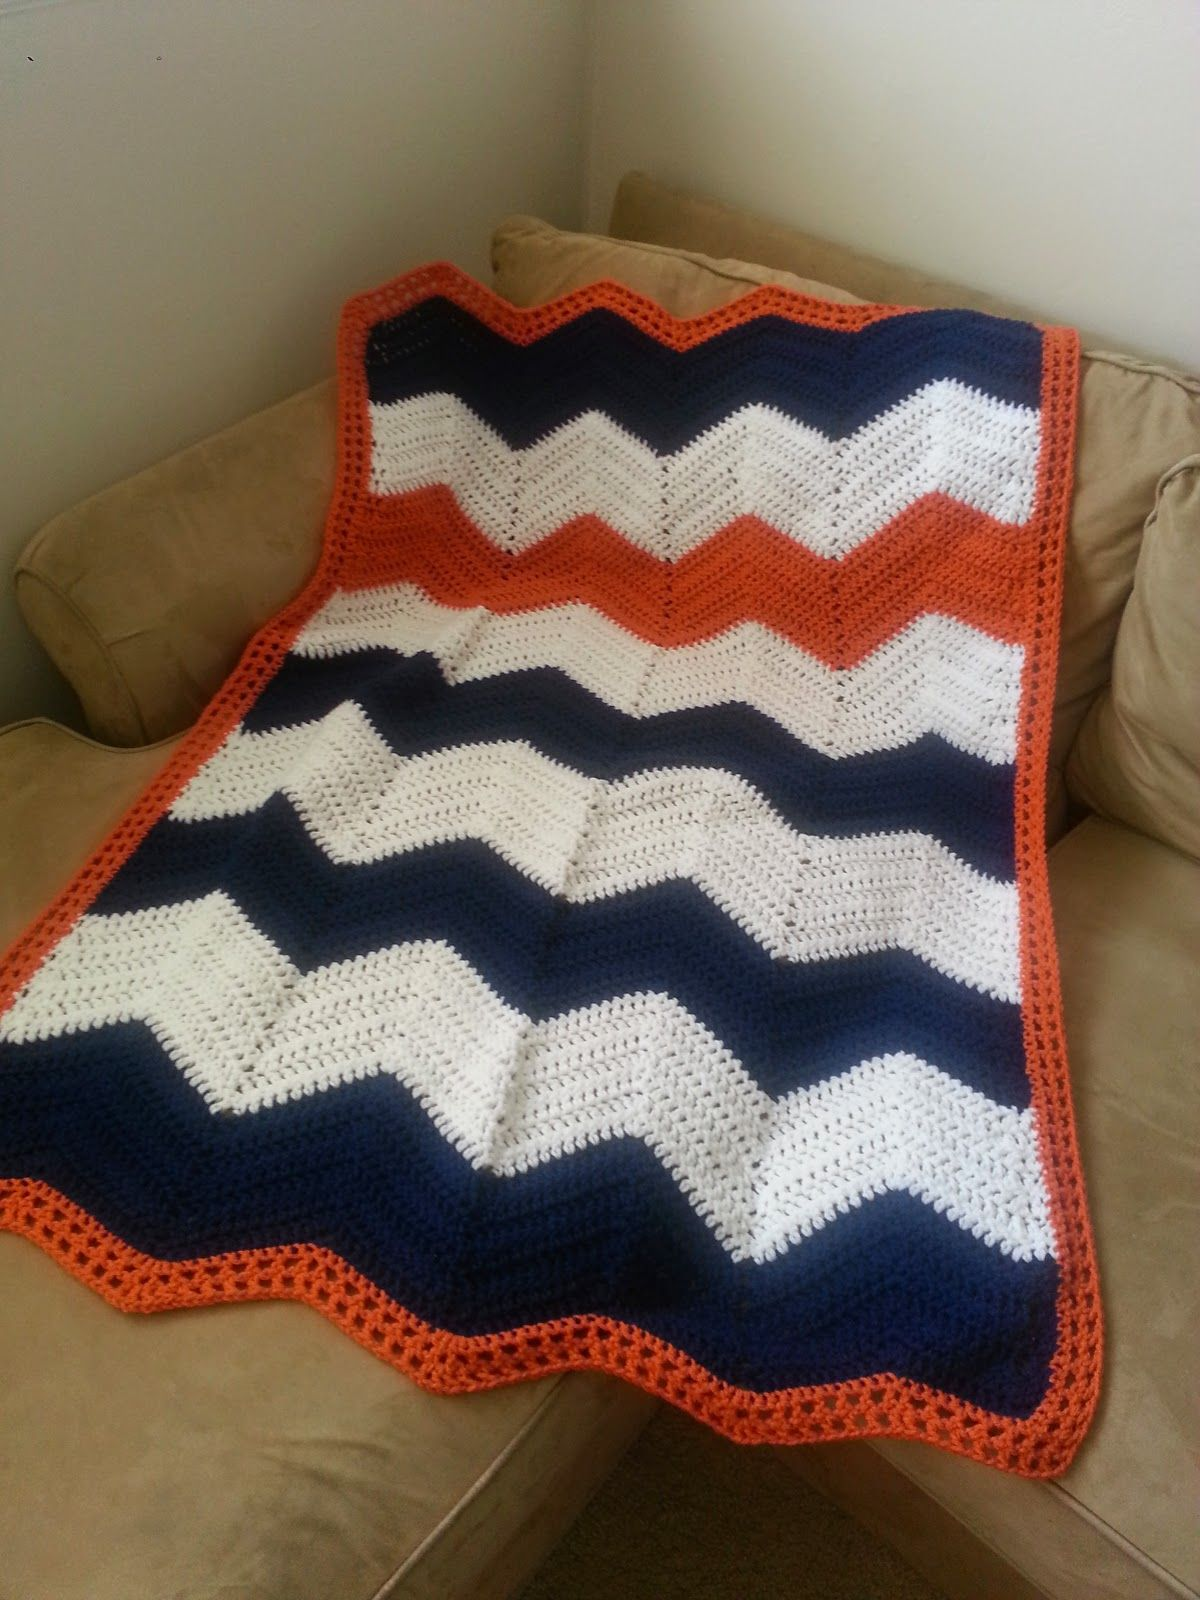 Creative Highs: Crochet Chevron Blanket Free Pattern | crochet ideas ...